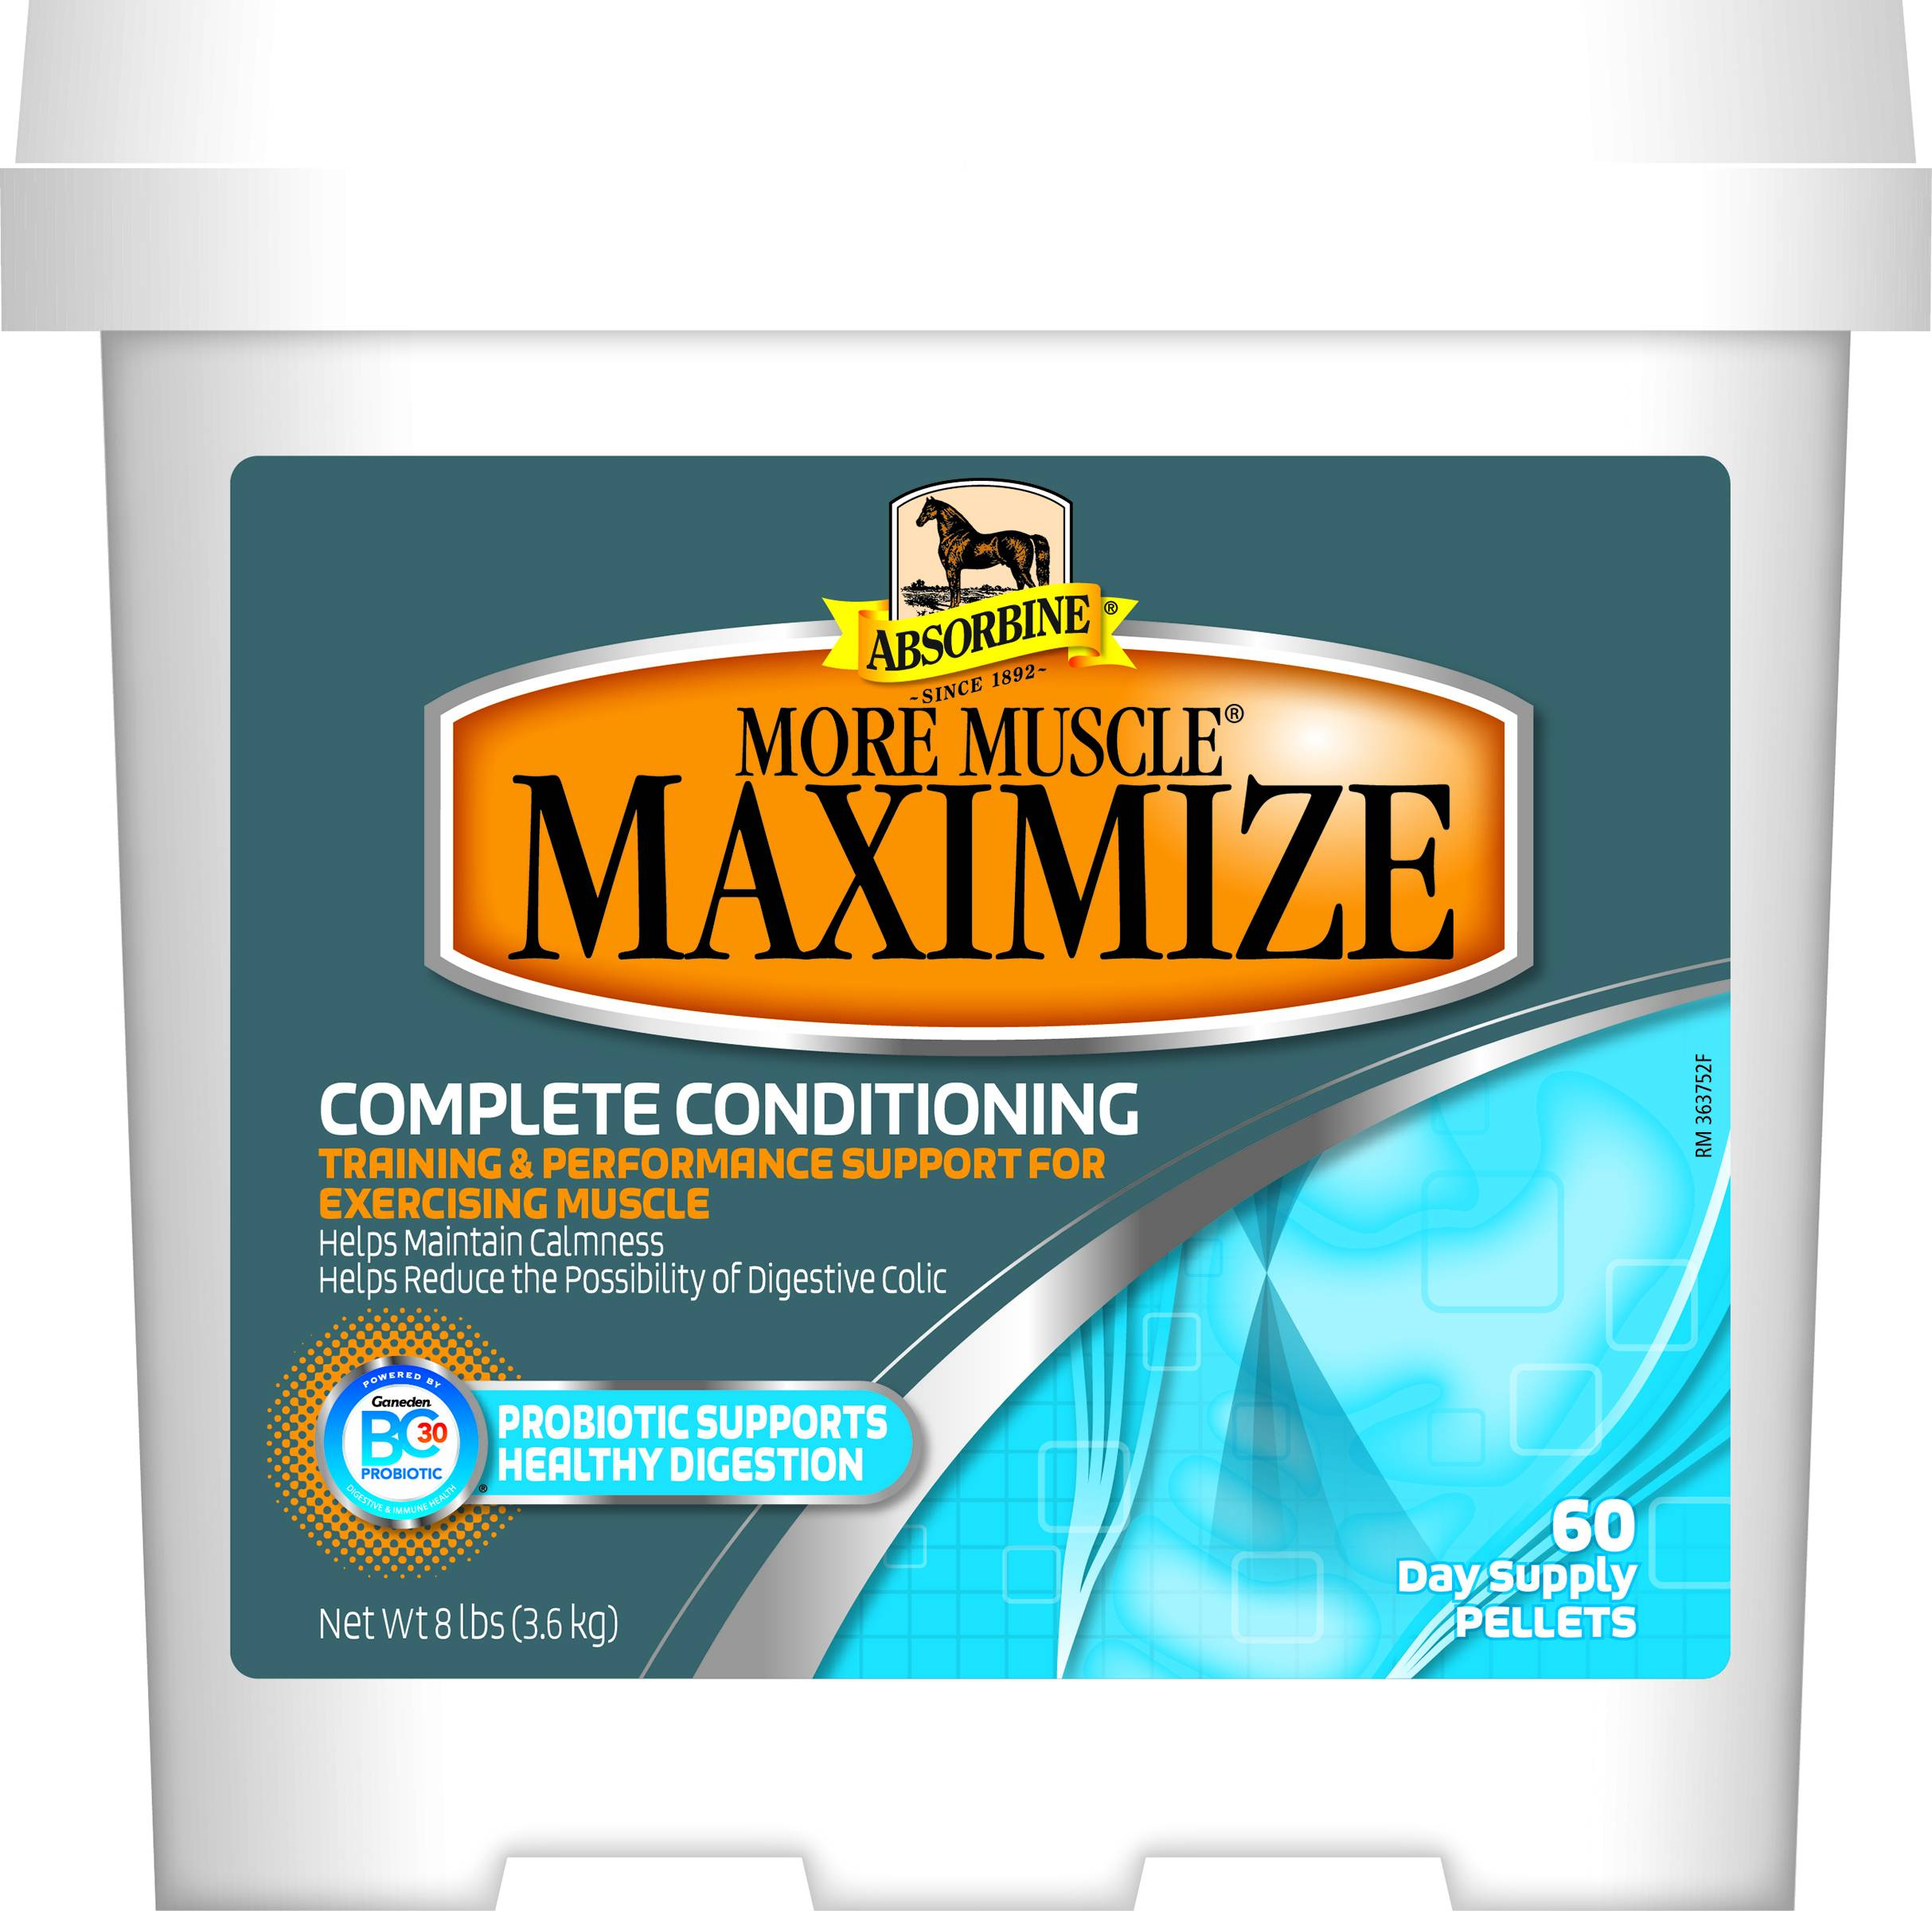 Absorbine More Muscle Maximize 8 lb4760 Day